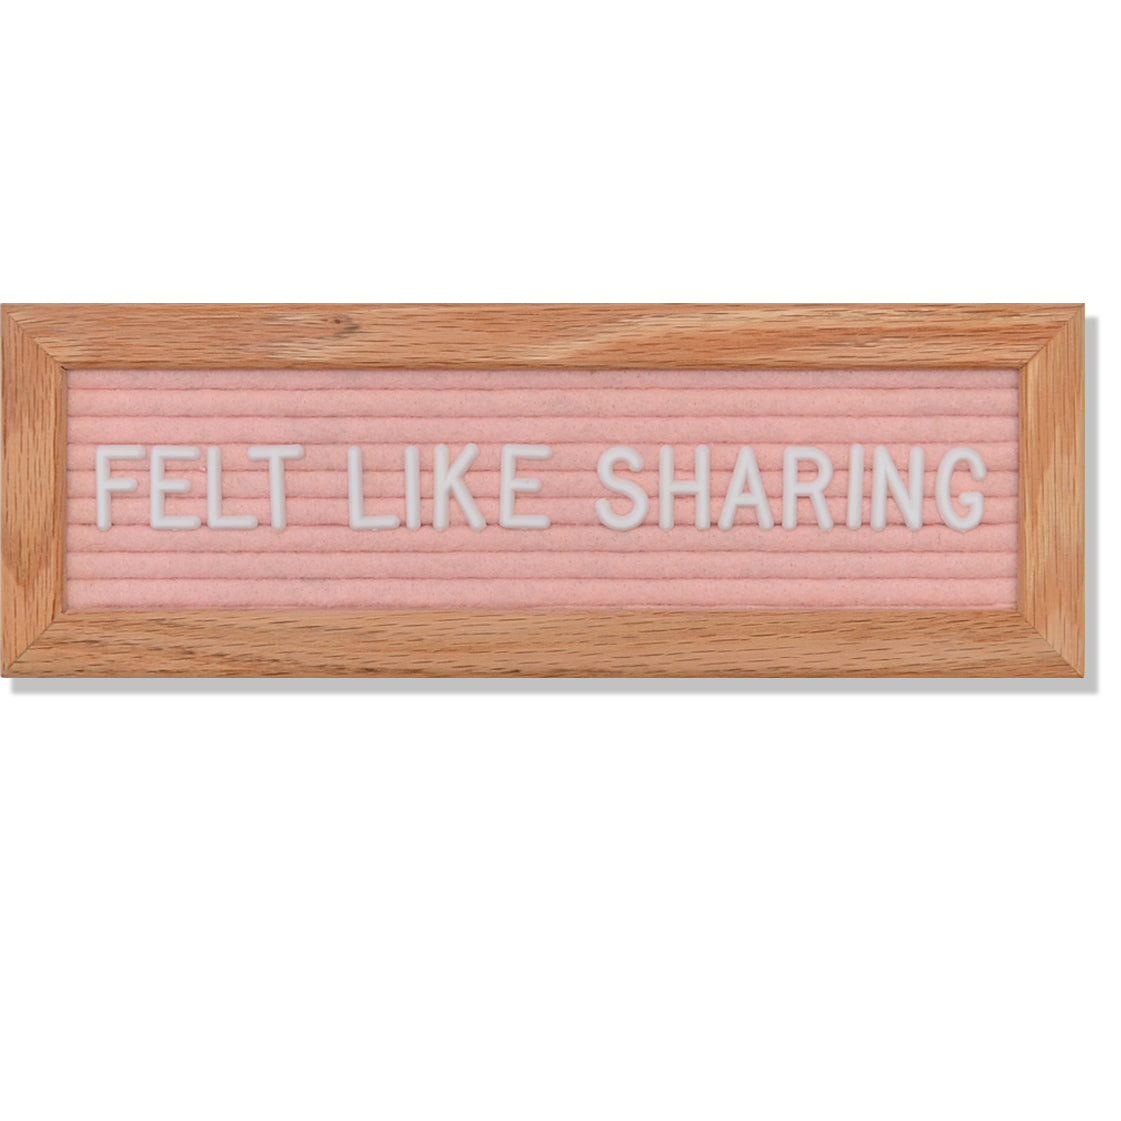 "Abbrev: 10"" x 3.5"", Light Pink 